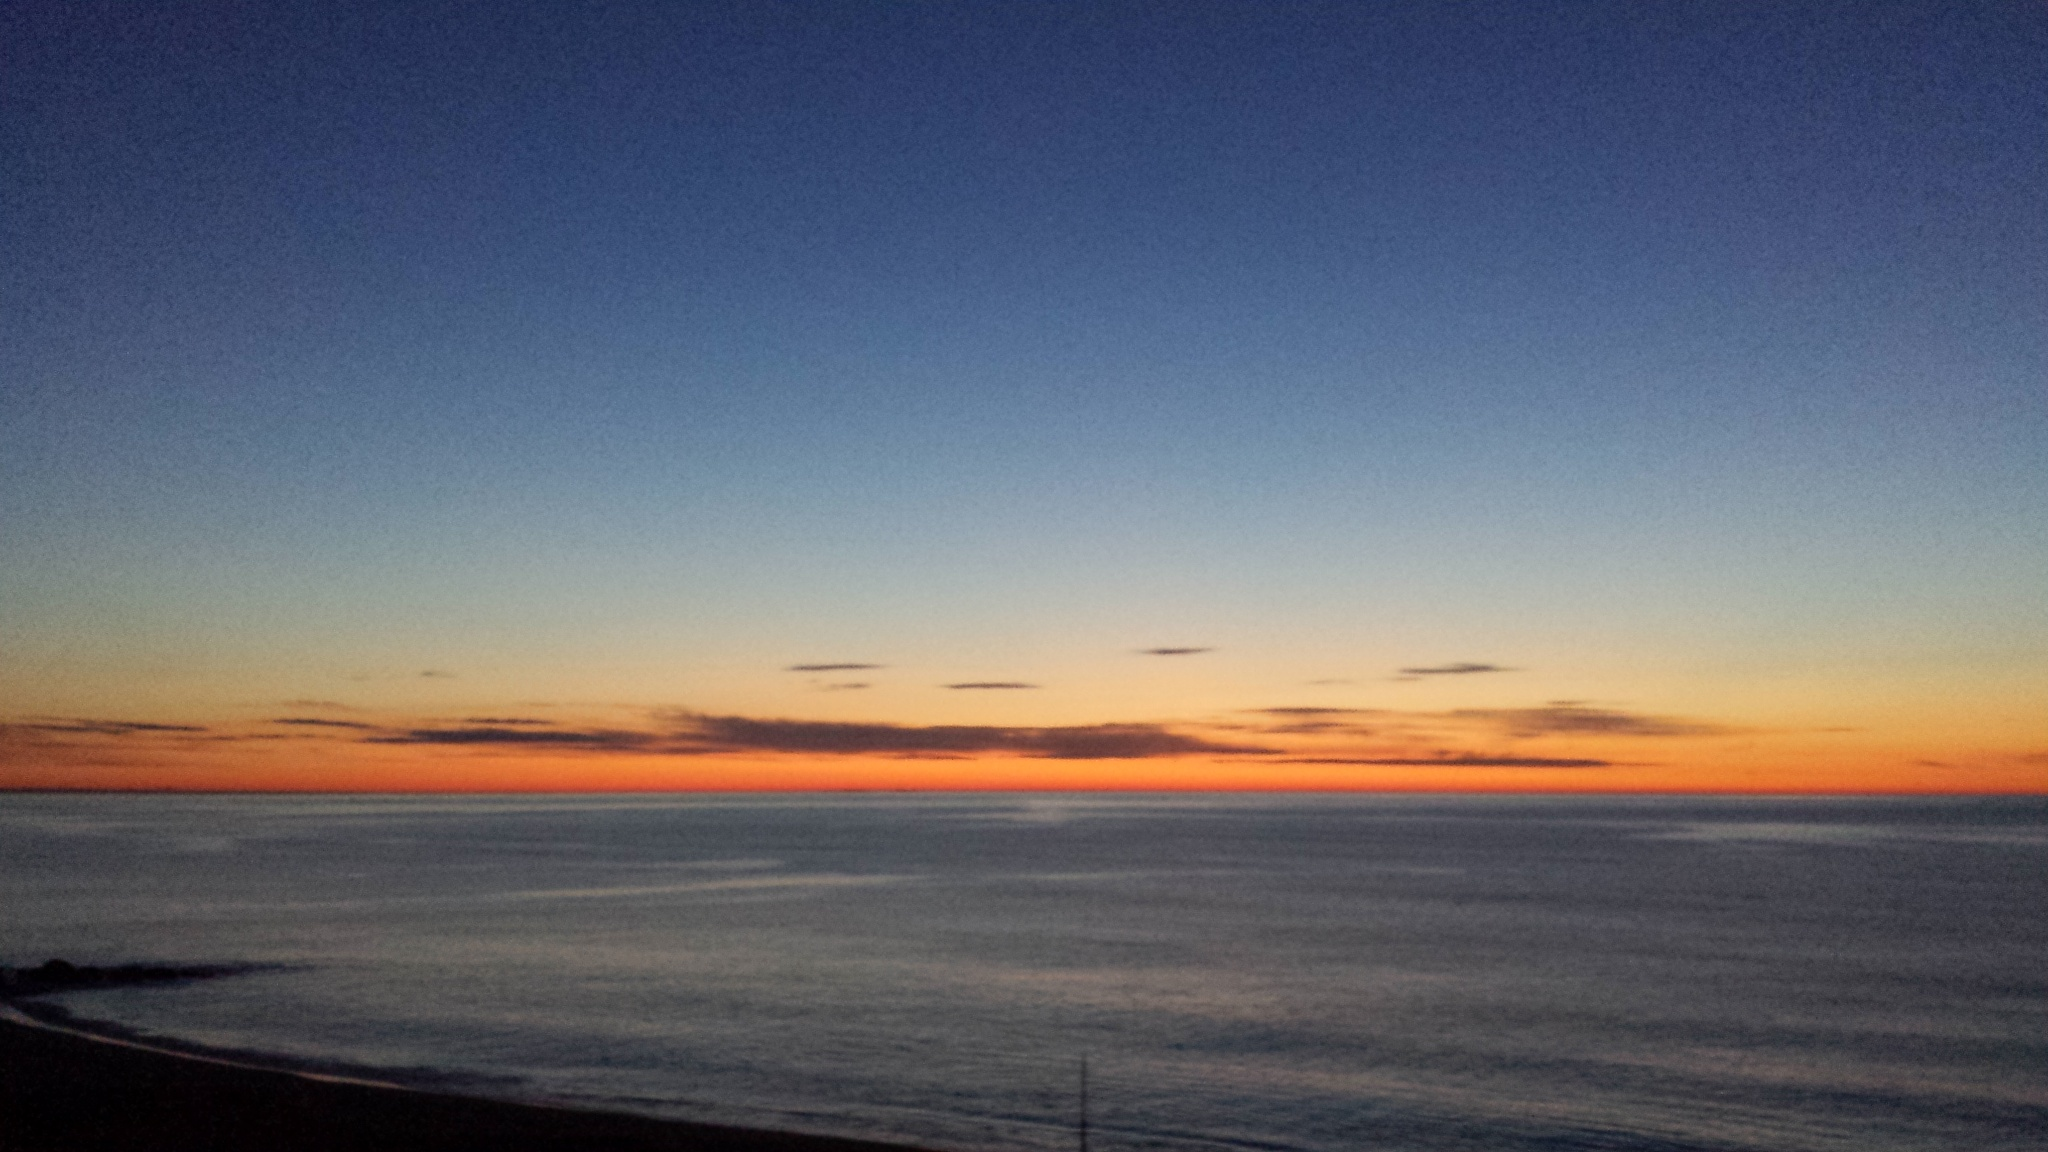 Sunrise This Morning... by Cary J.Casse